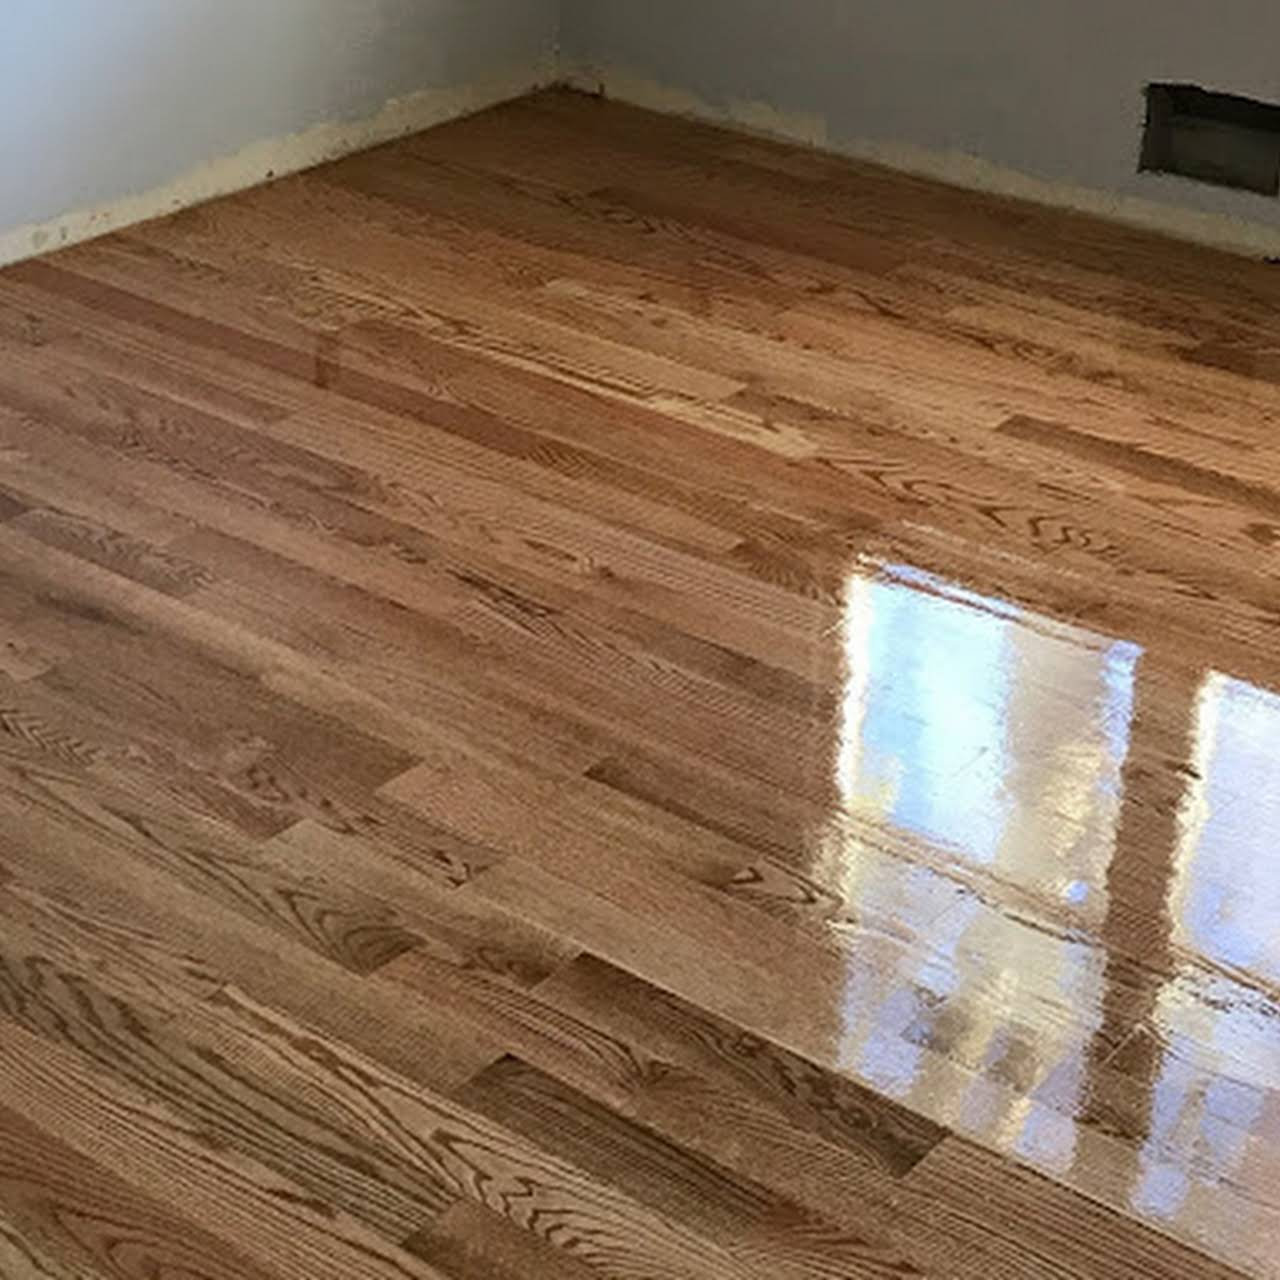 Jose Vazquez Hardwood Floors Install Refinish And Custom Designs - Hardwood floor refinishing cape cod ma